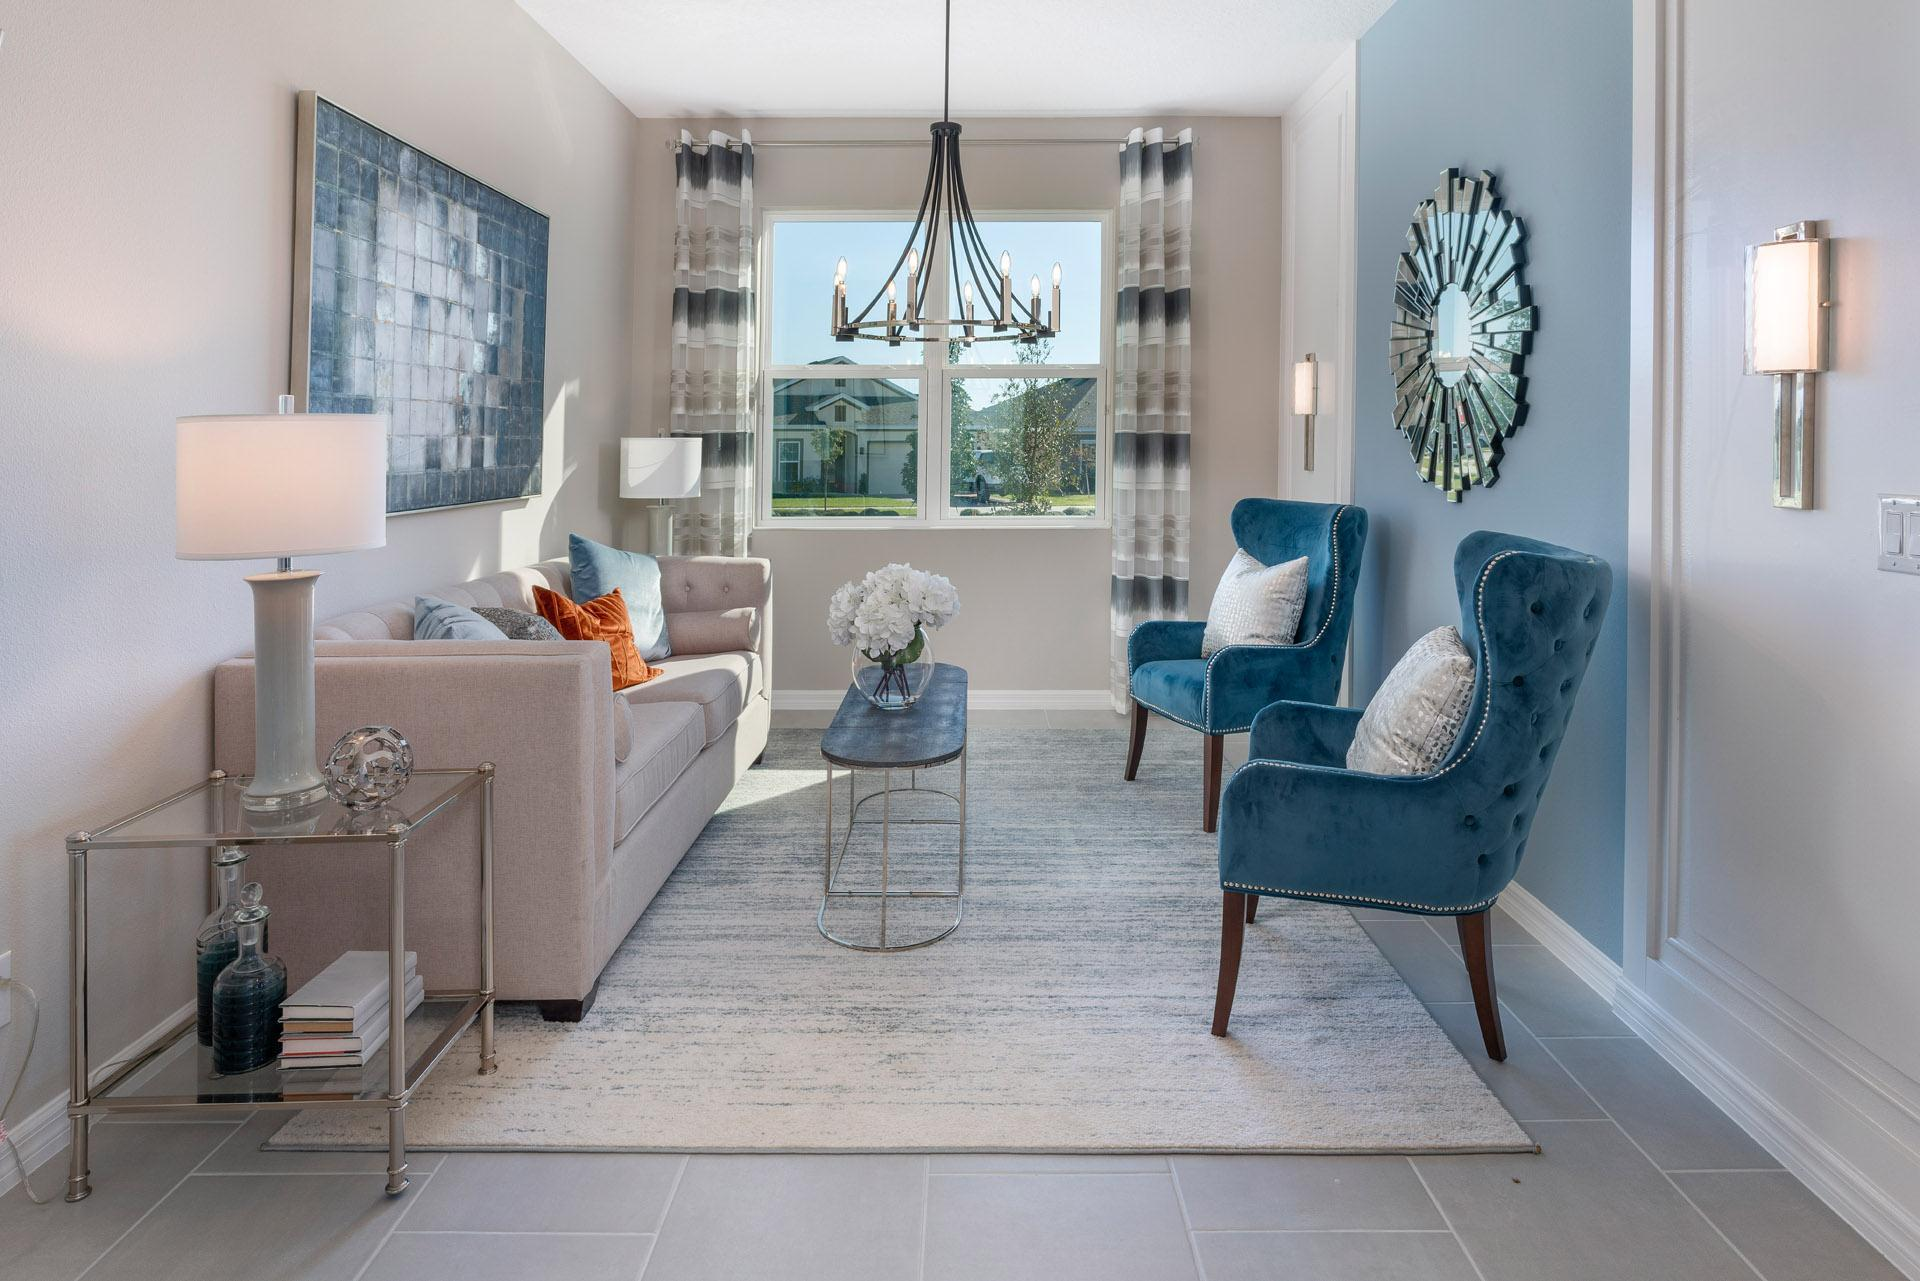 Living Area featured in the Kensington Flex By Hanover Family Builders in Lakeland-Winter Haven, FL